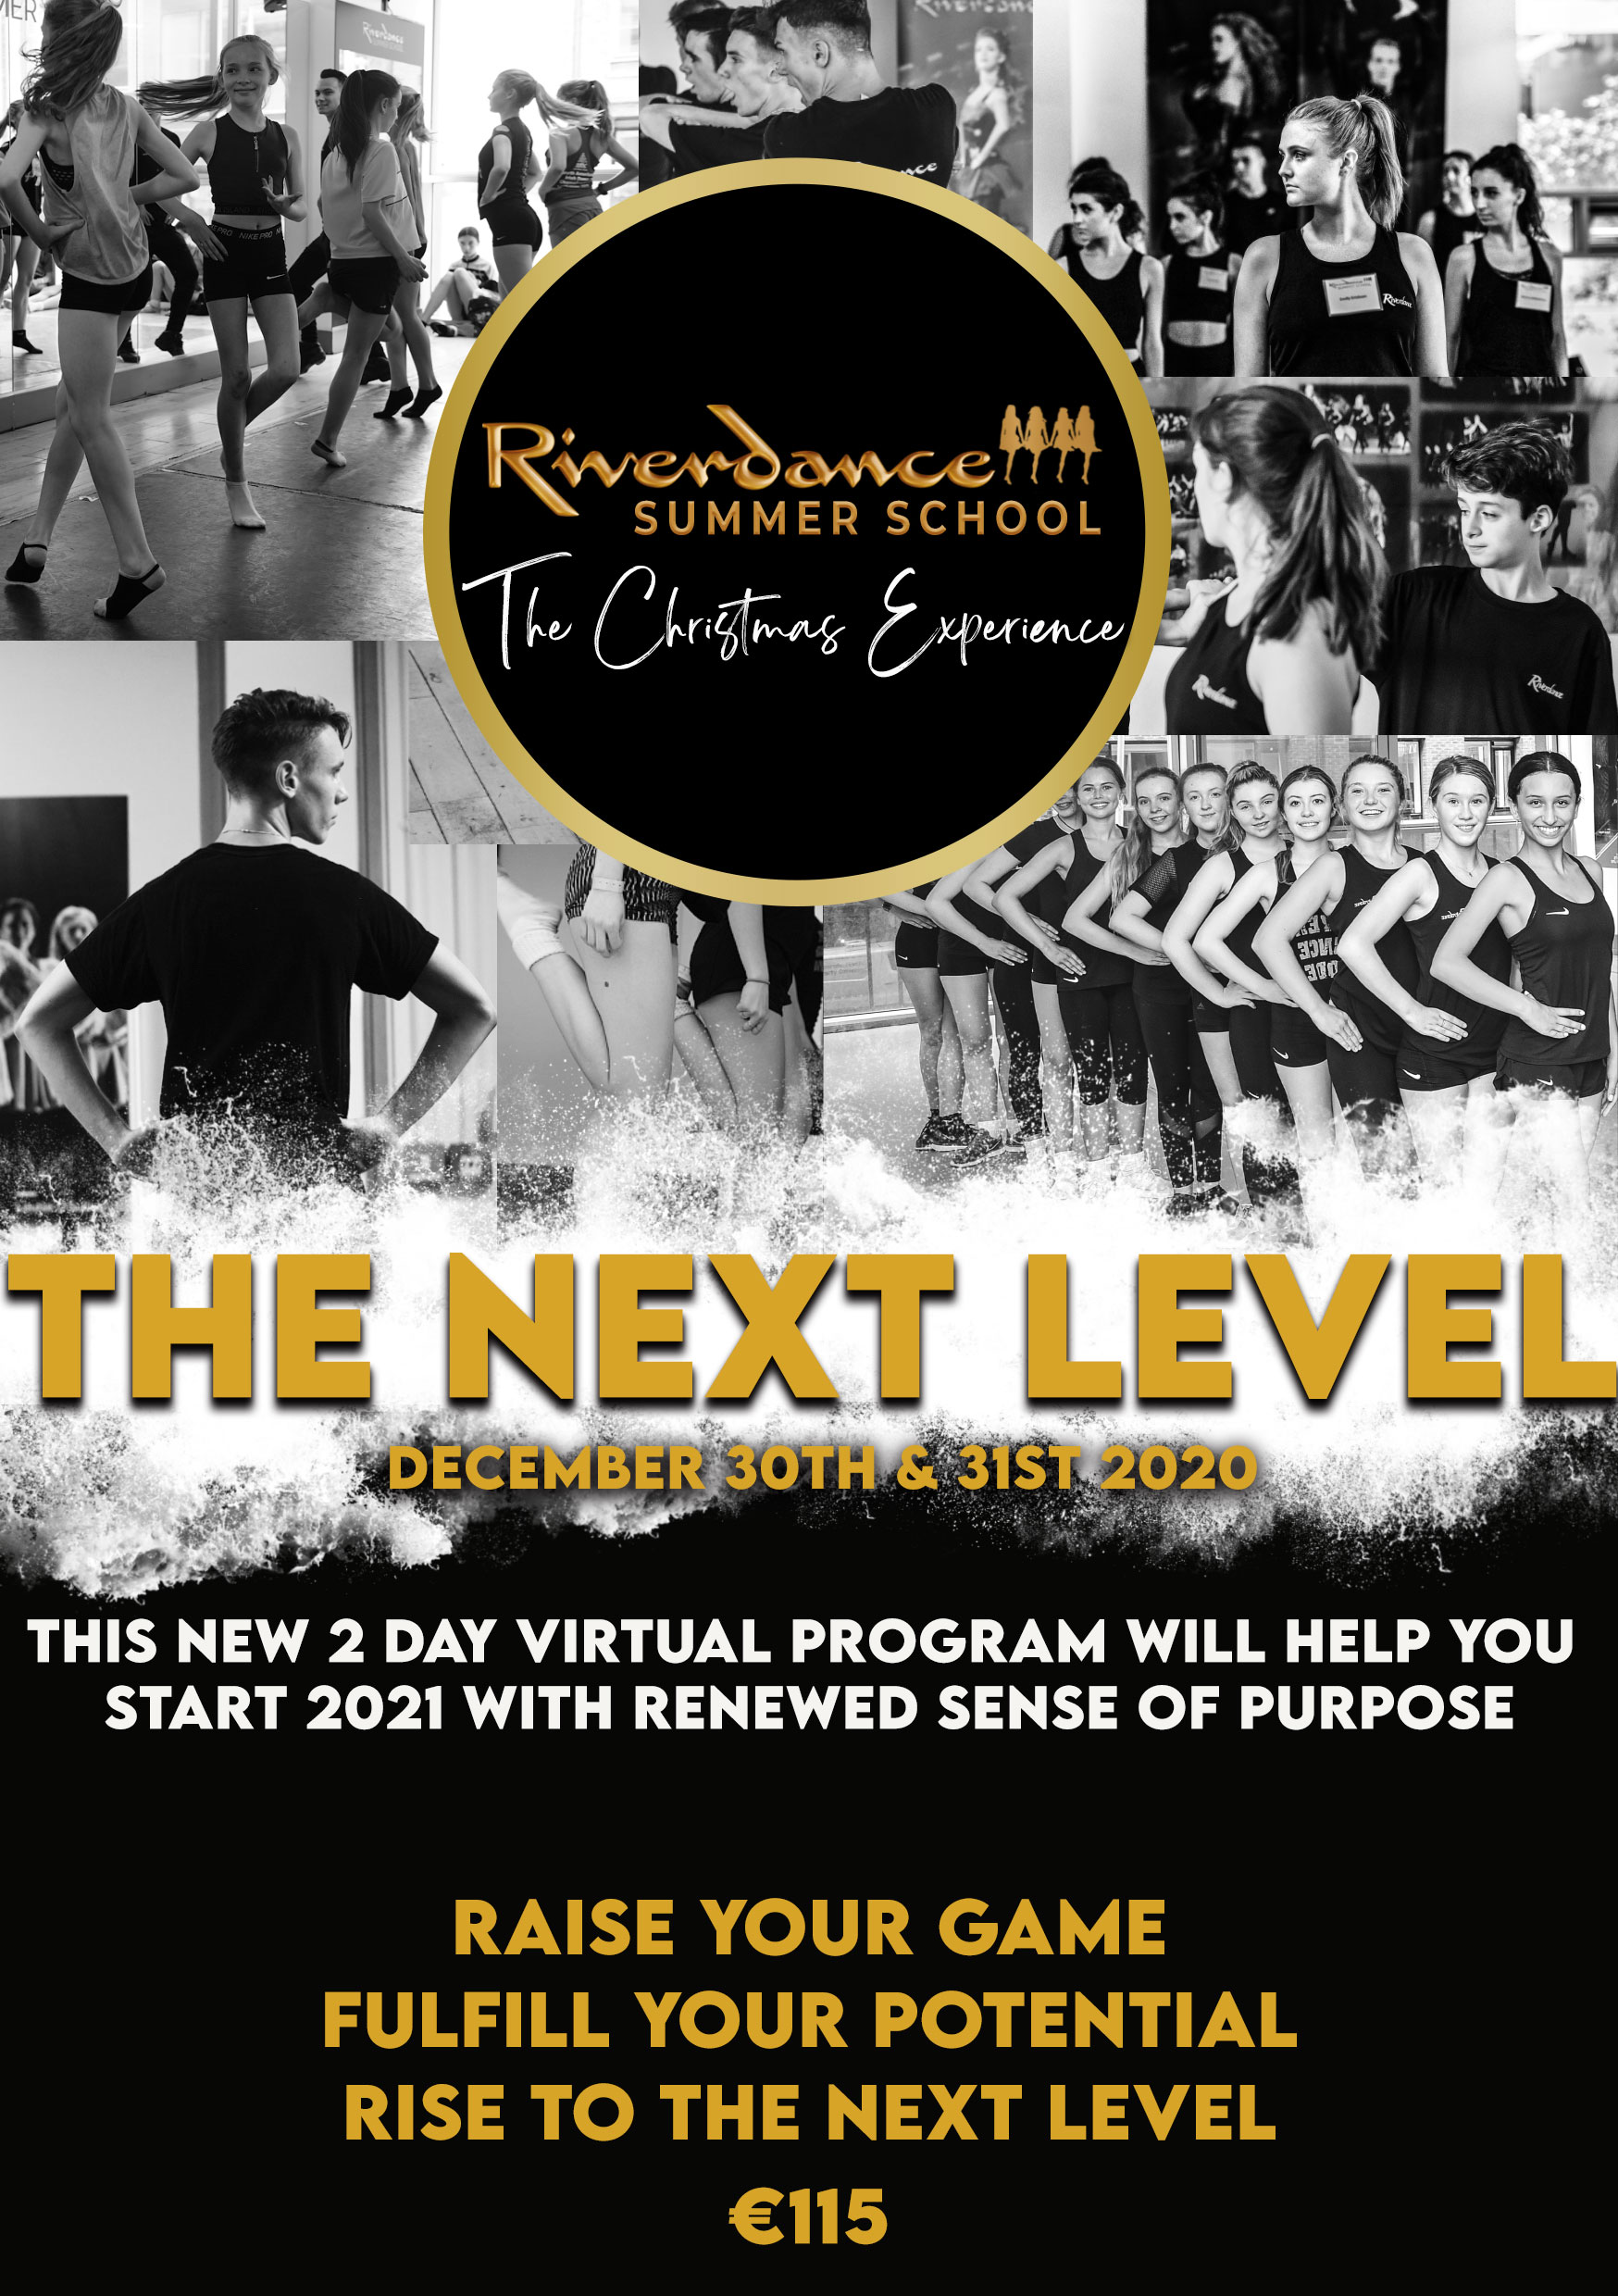 Riverdance's Next Level Program